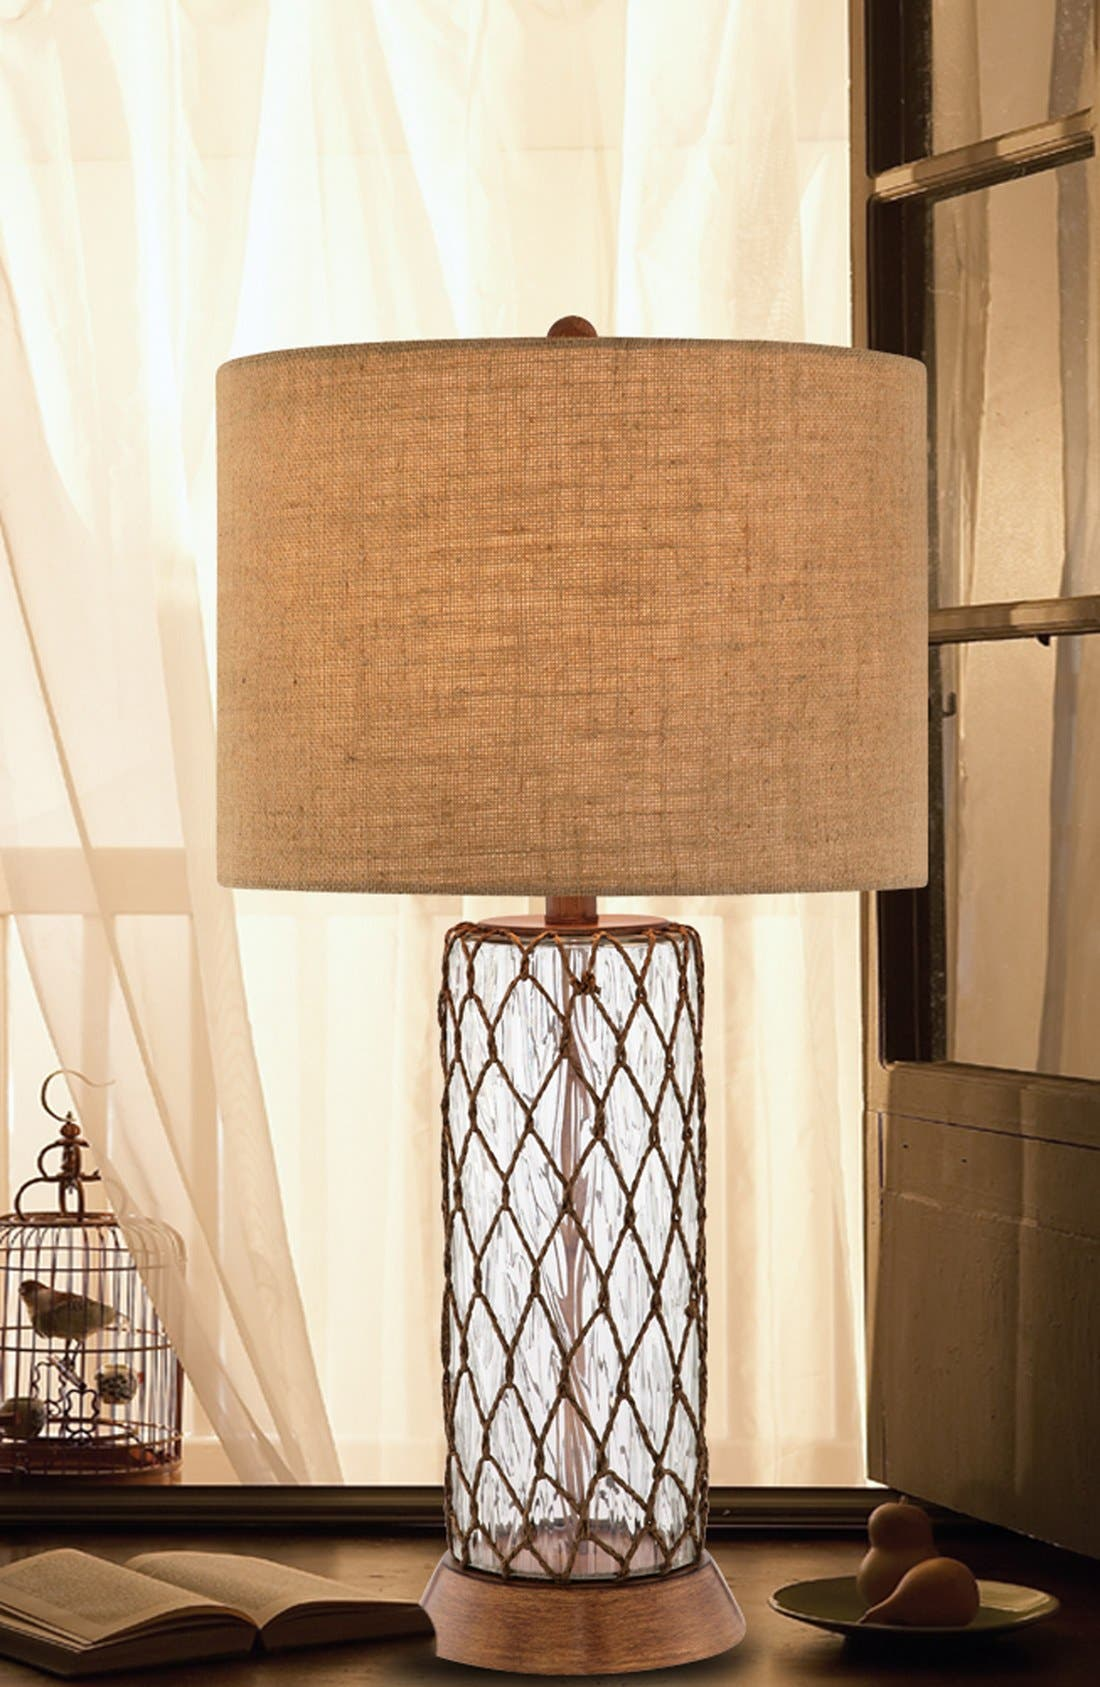 Clear Glass Table Lamp,                             Alternate thumbnail 4, color,                             250